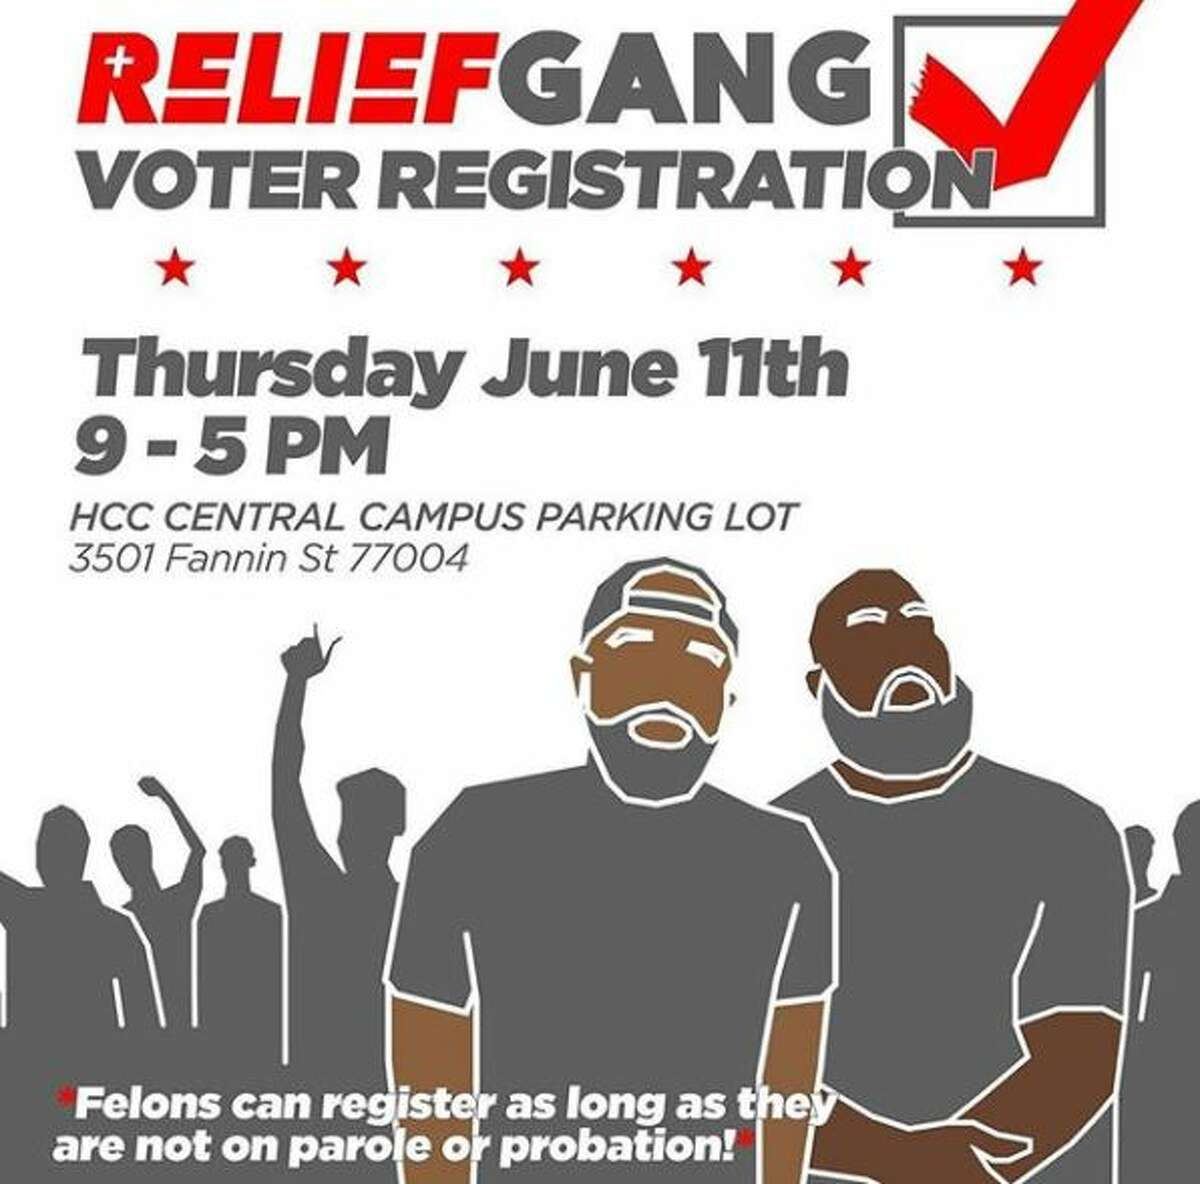 Houston rapper and activist, Trae tha Truth is holding a voter registration drive Thursday at the Houston Community College's Central Campus parking lot on 3501 Fannin Street. The Relief Gang Voter Registration Drive is being held from 9 a.m. to 5 p.m.